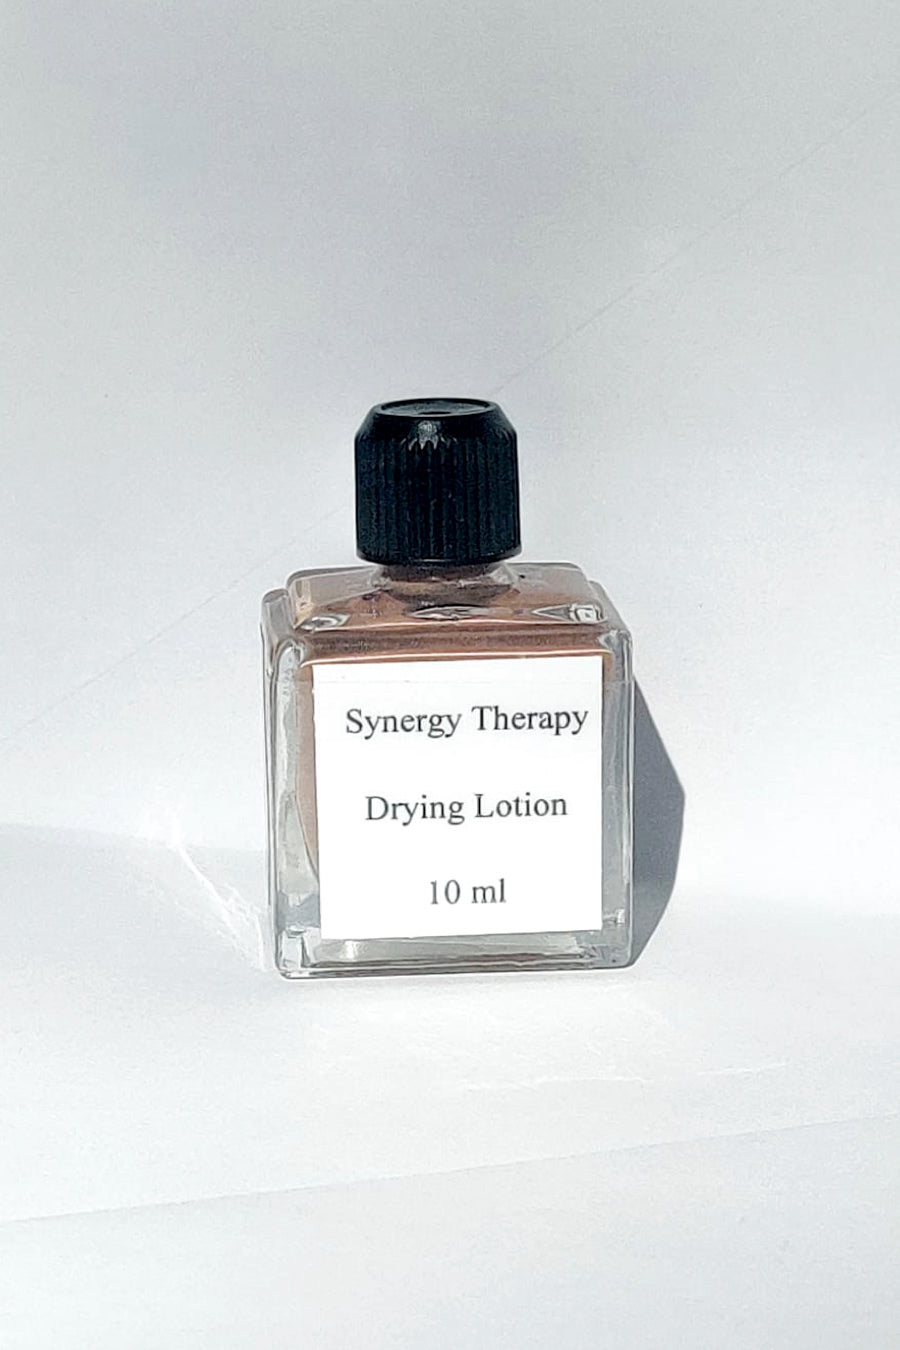 Synergy Therapy Drying Lotion